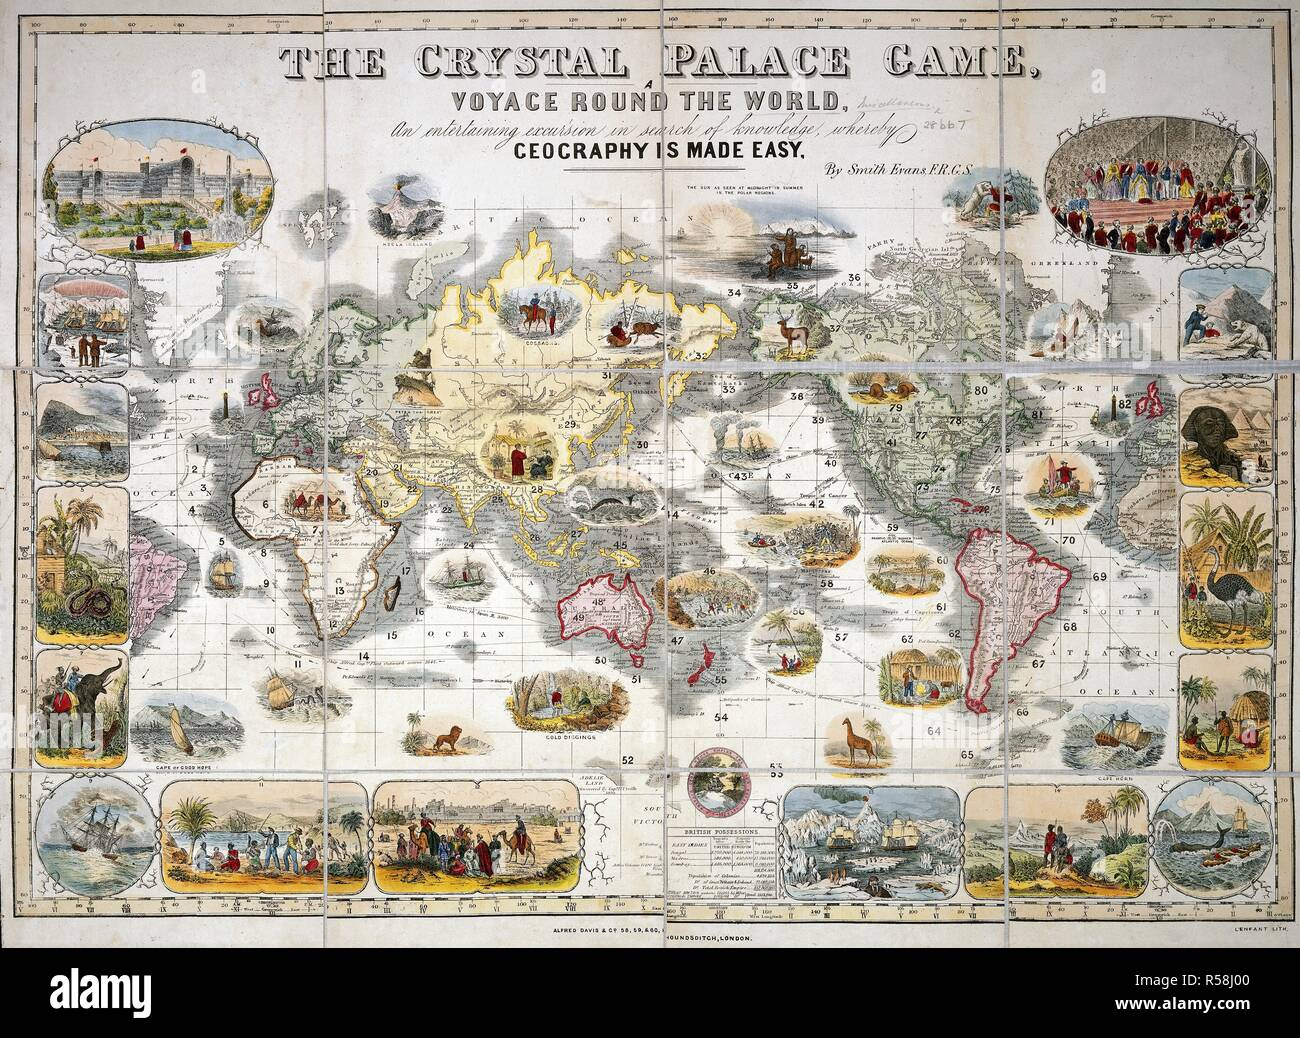 A pictorial map of the world illustrating different cultures